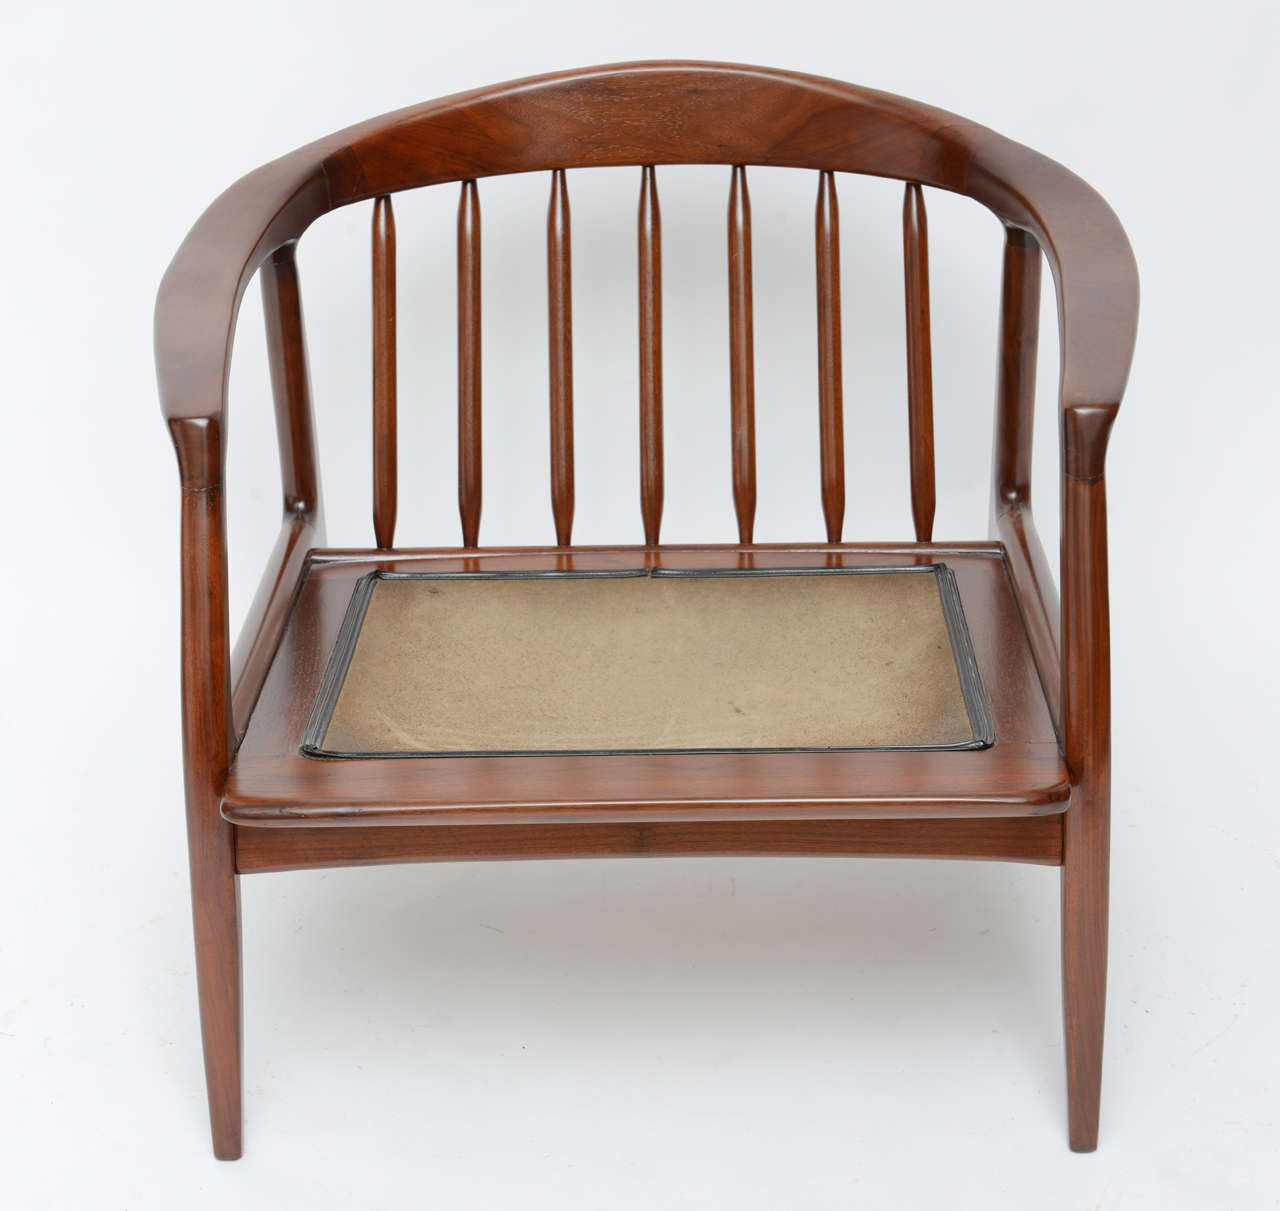 Milo baughman wood spindle arm chair at stdibs